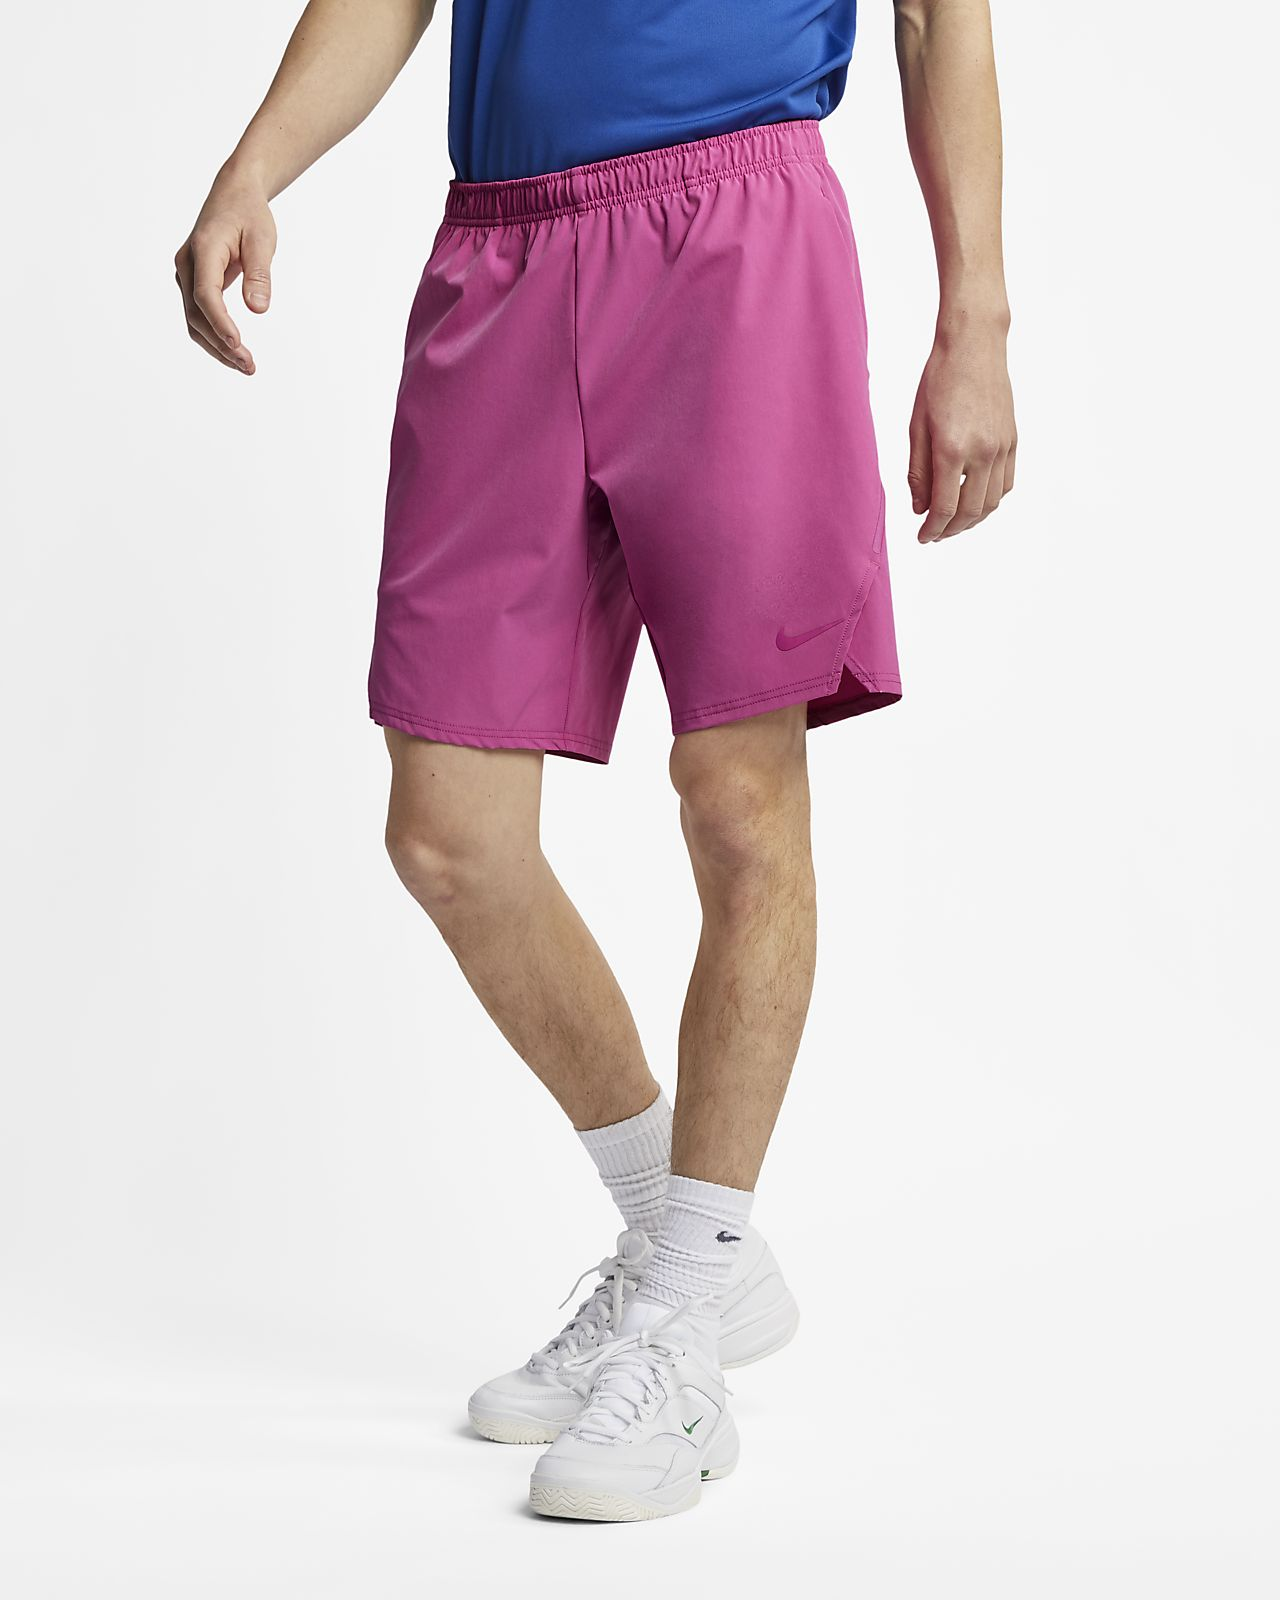 "NikeCourt Flex Ace Men's 9"" (23cm approx.) Tennis Shorts"